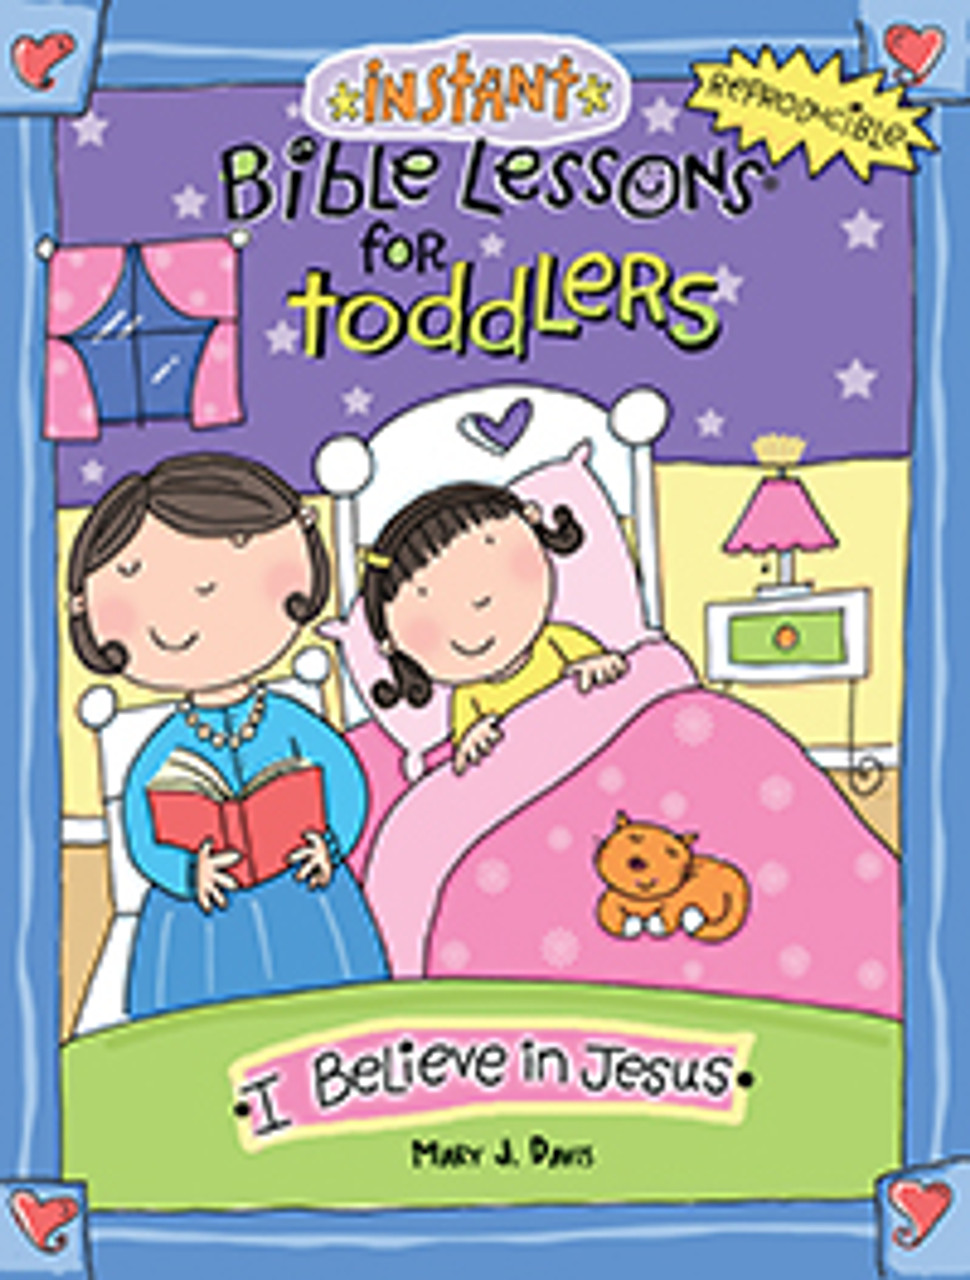 Instant Bible Lessons for Toddlers - I Believe in Jesus